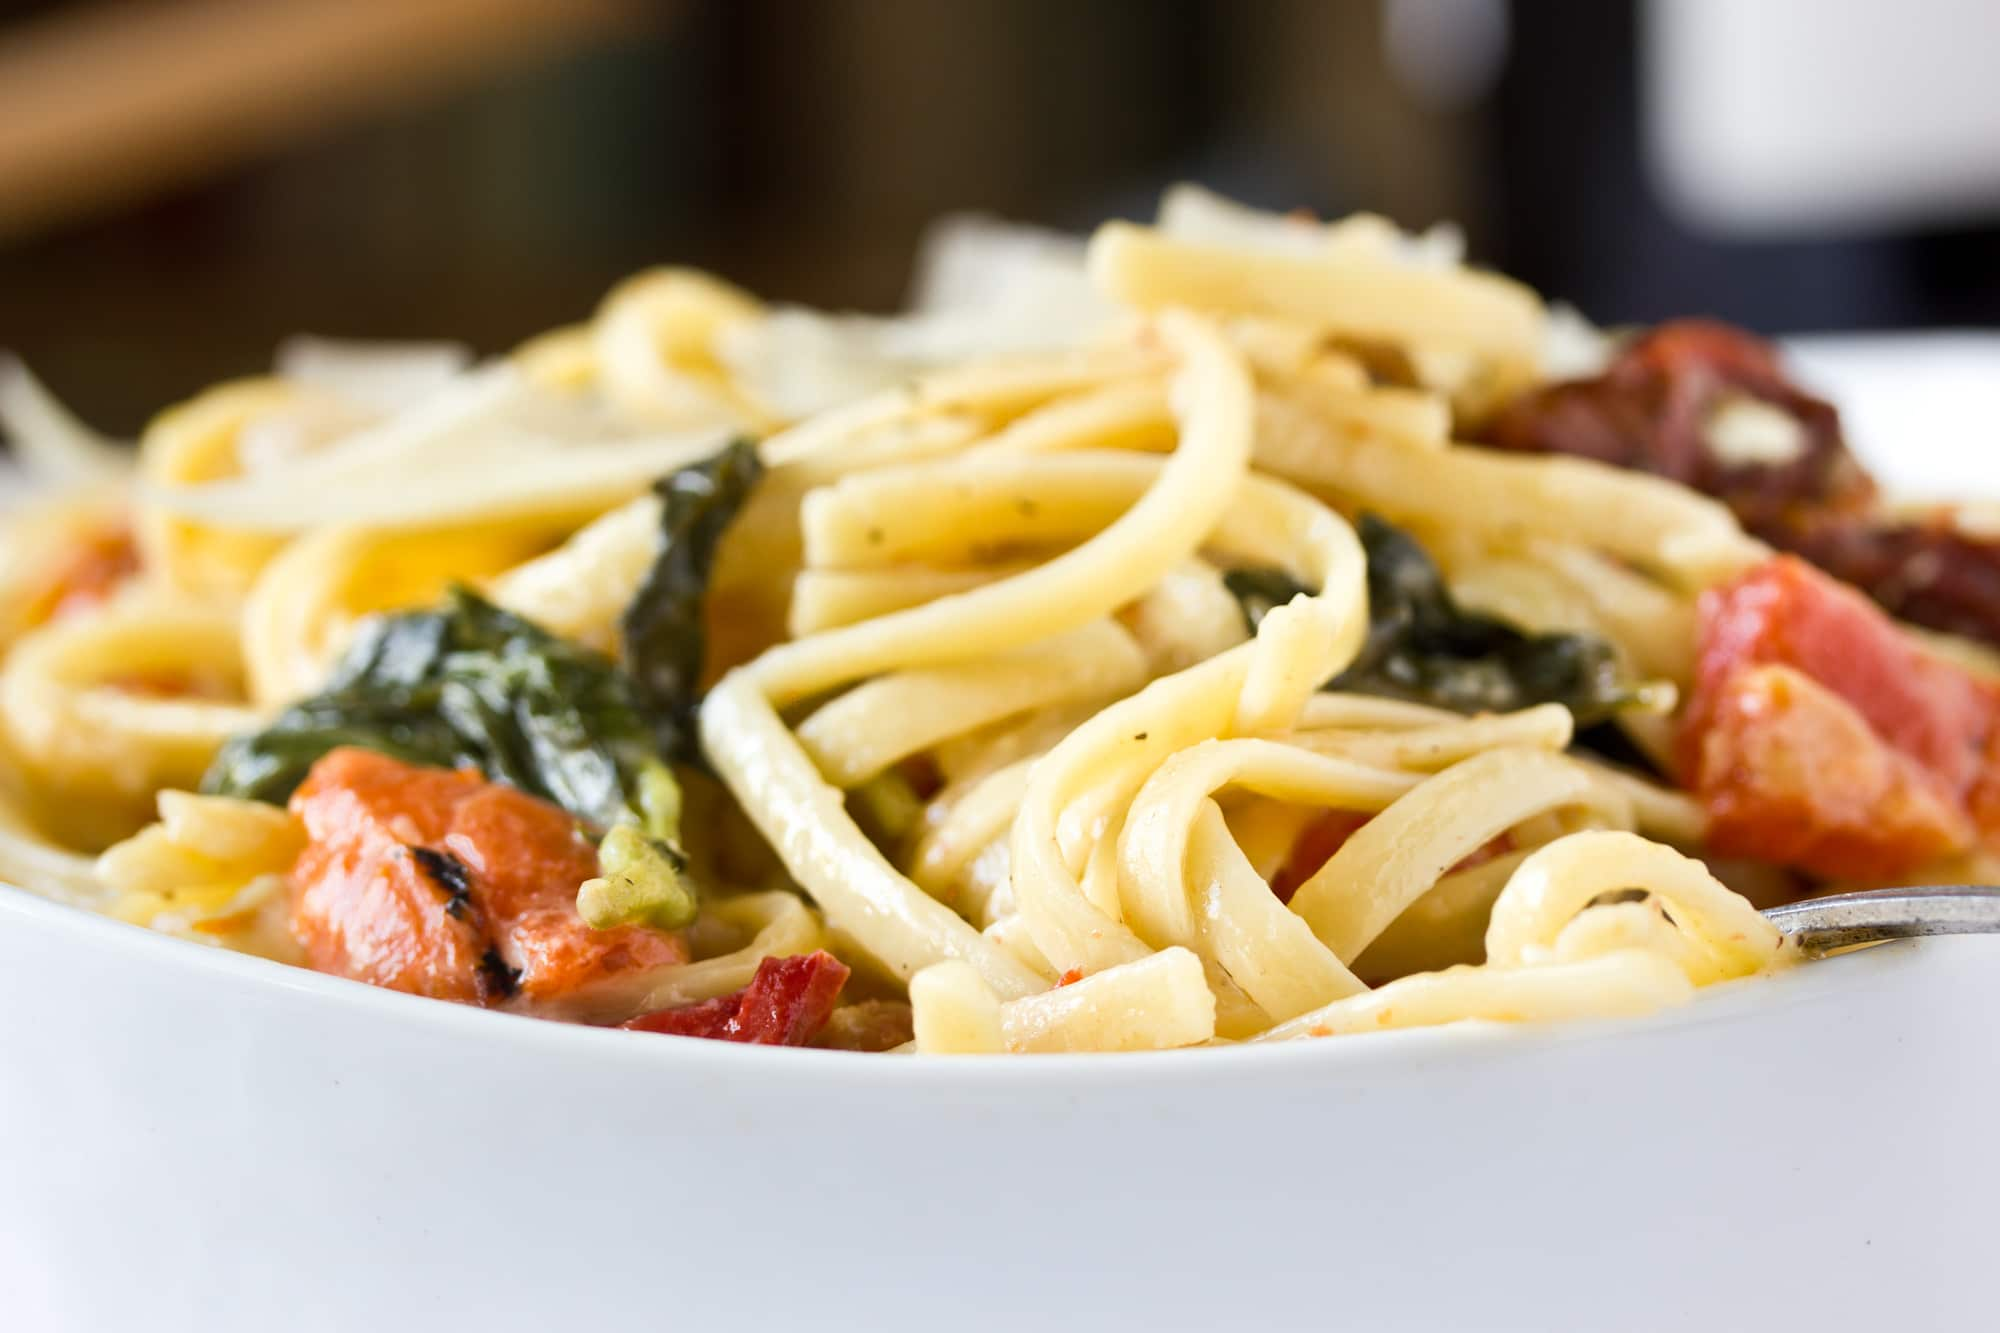 One-Pot Pasta: Linguine with Roasted Red Peppers, Sun-Dried Tomatoes, & Brie